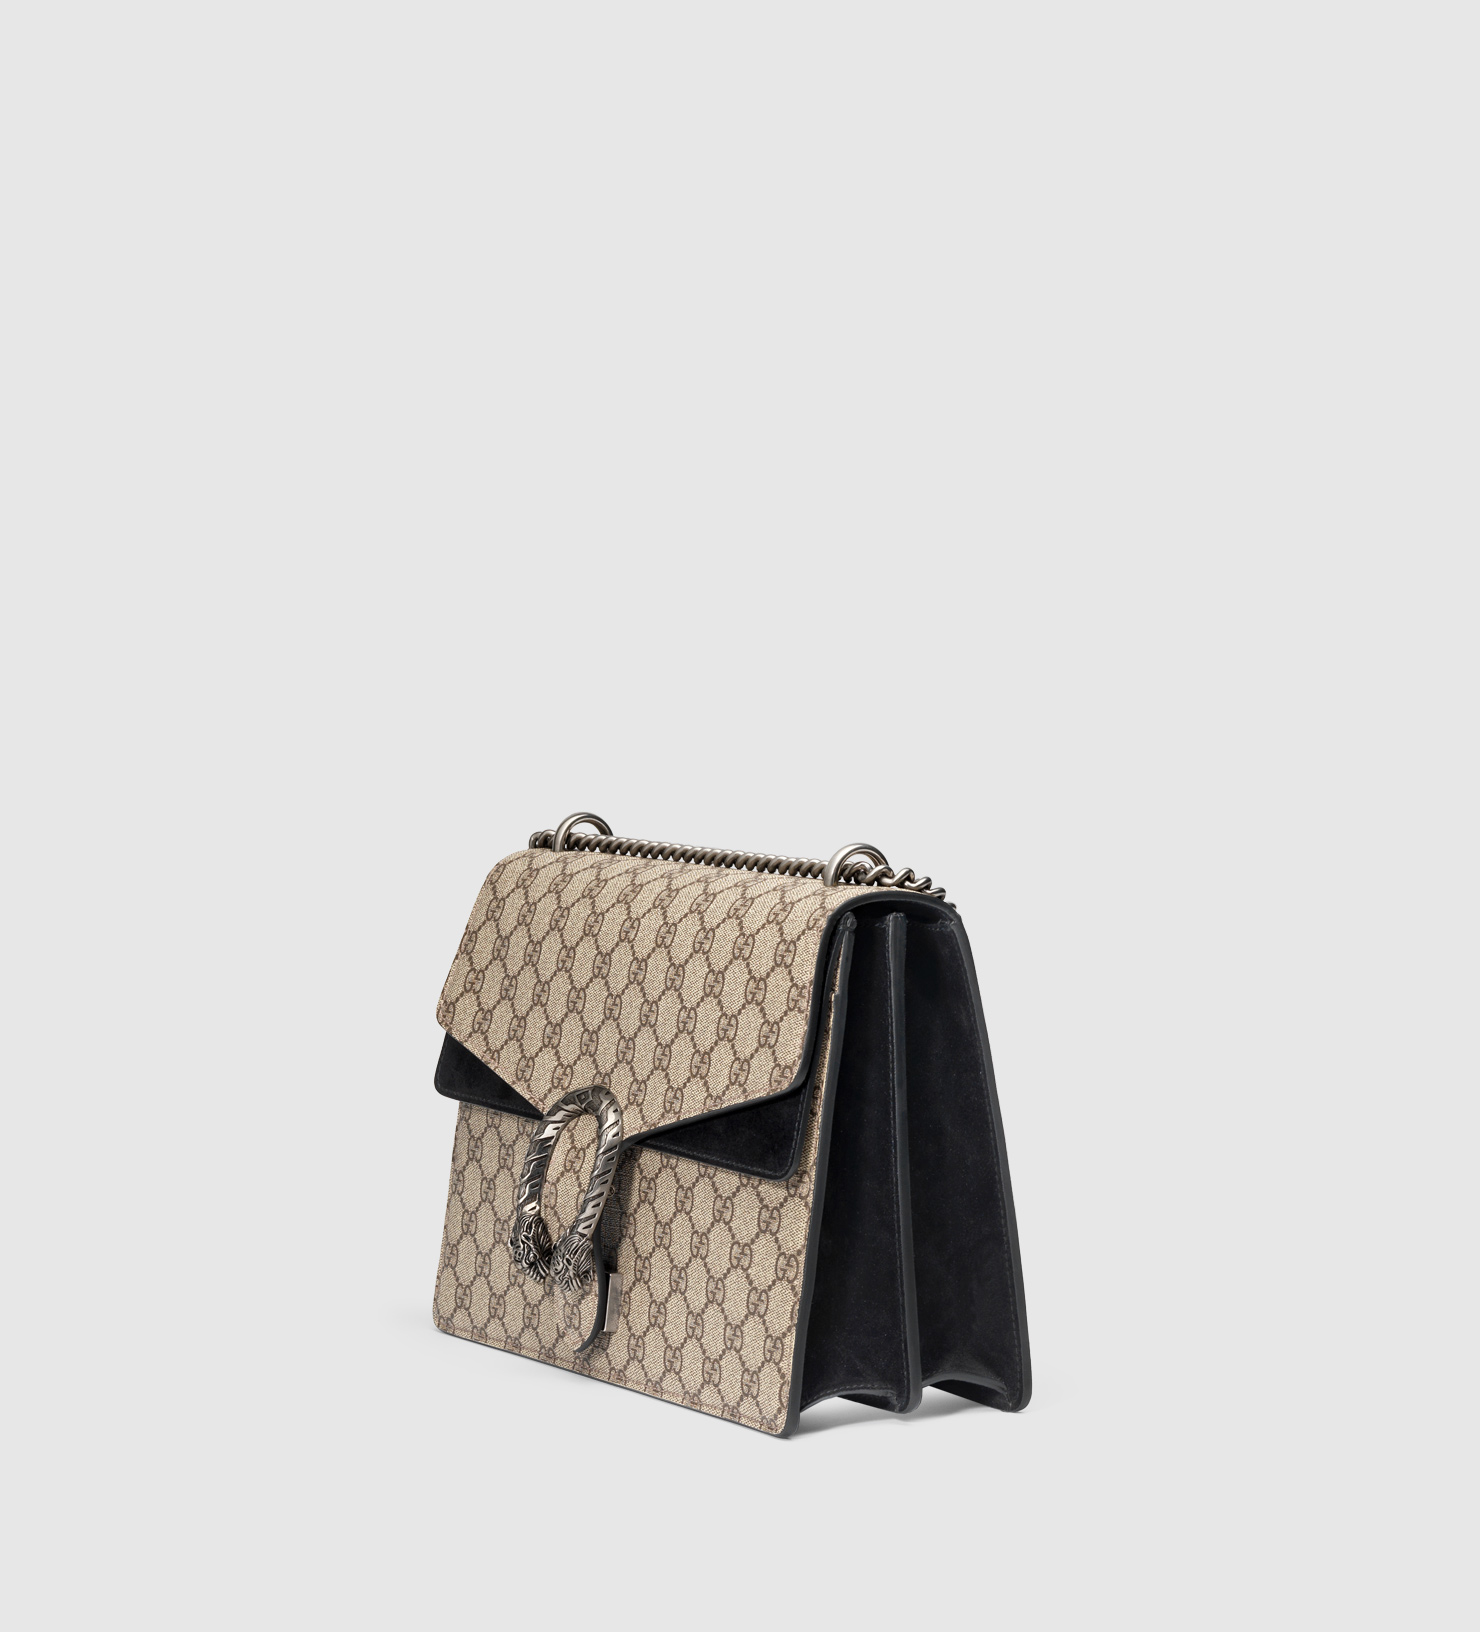 Gallery Women S Gucci Dionysus